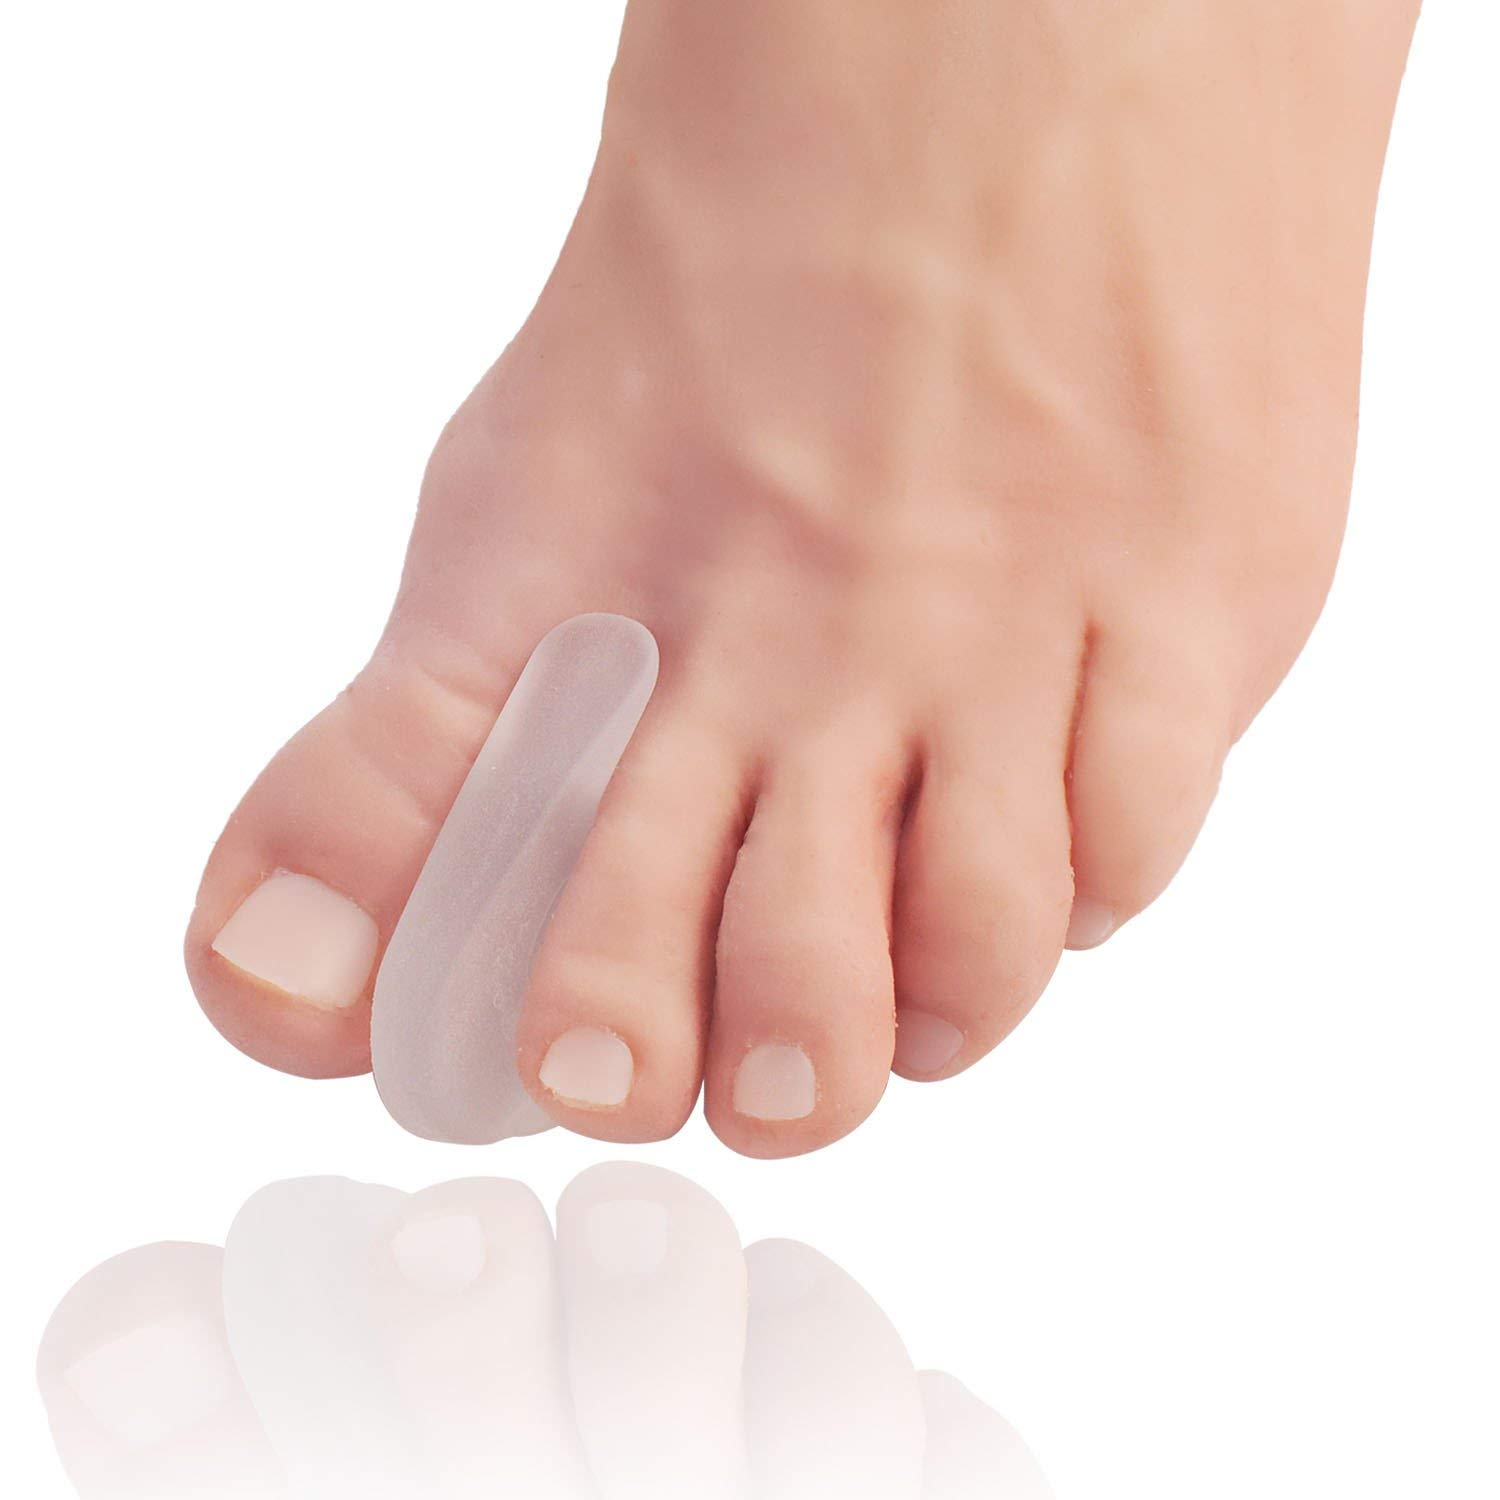 Dr. Frederick's Original Flared Gel Toe Separators